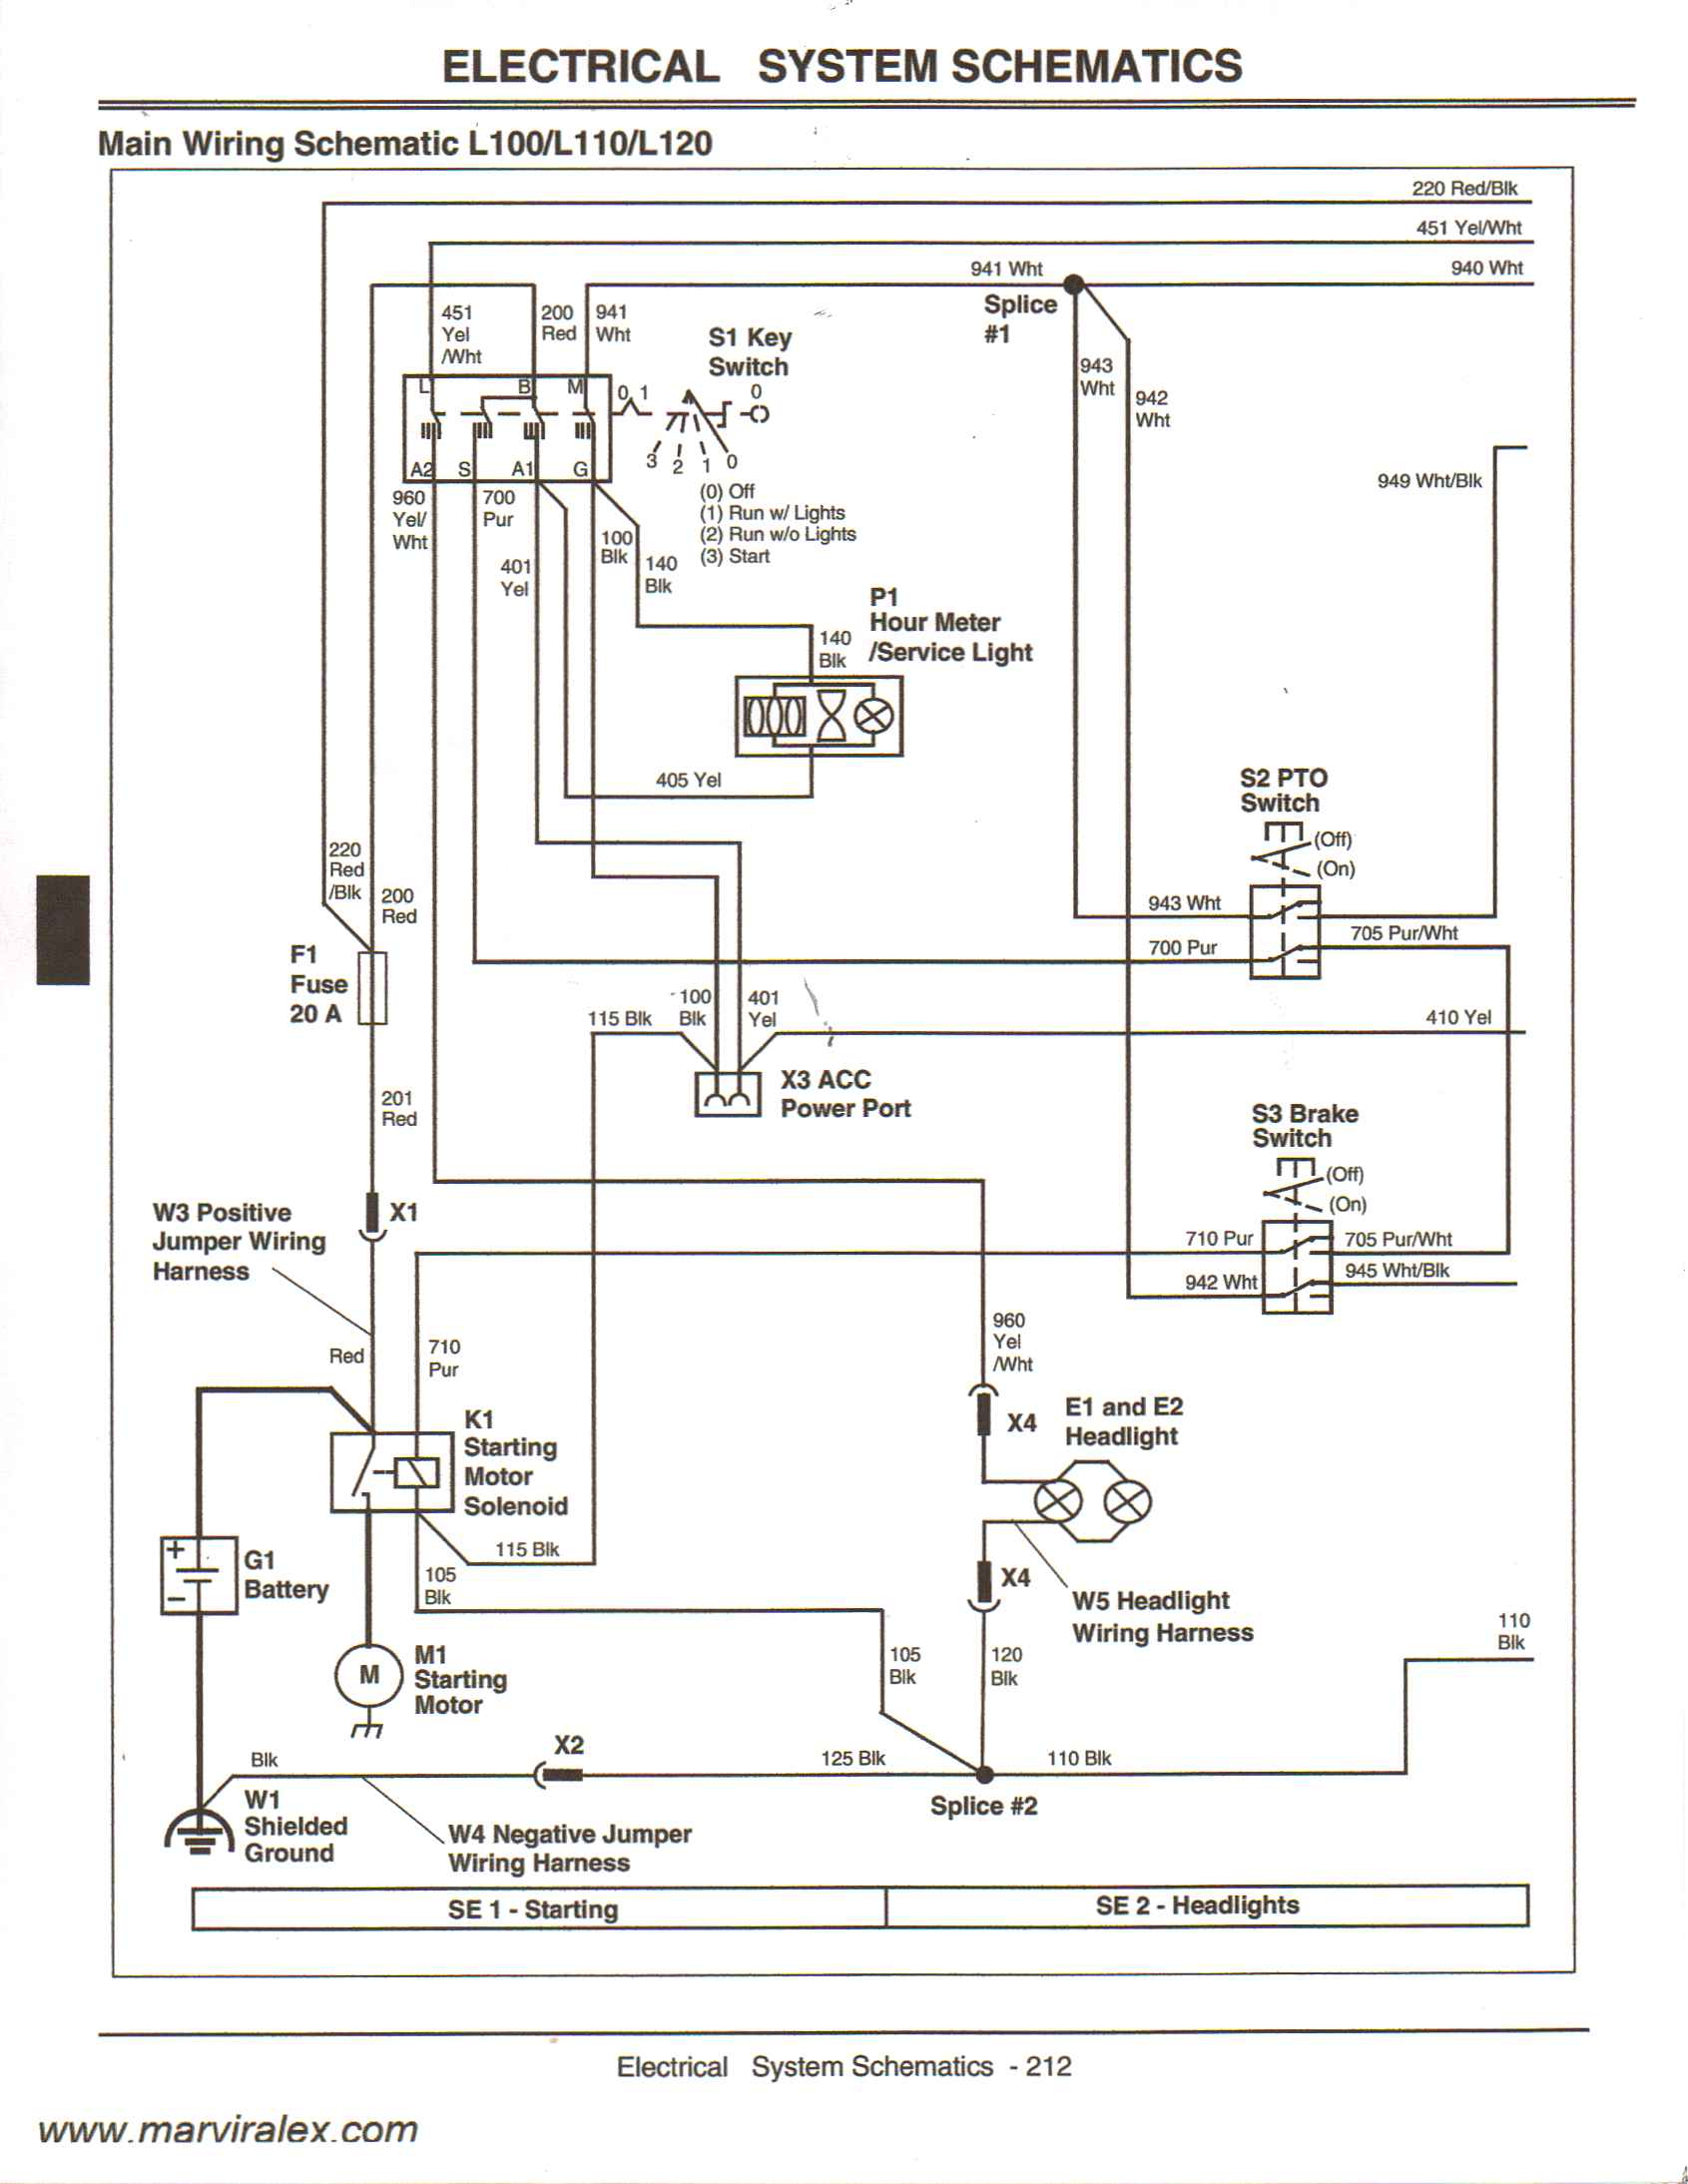 john deere 314 wiring harness diagram wiring diagram completed John Deere 318 Wiring Harness